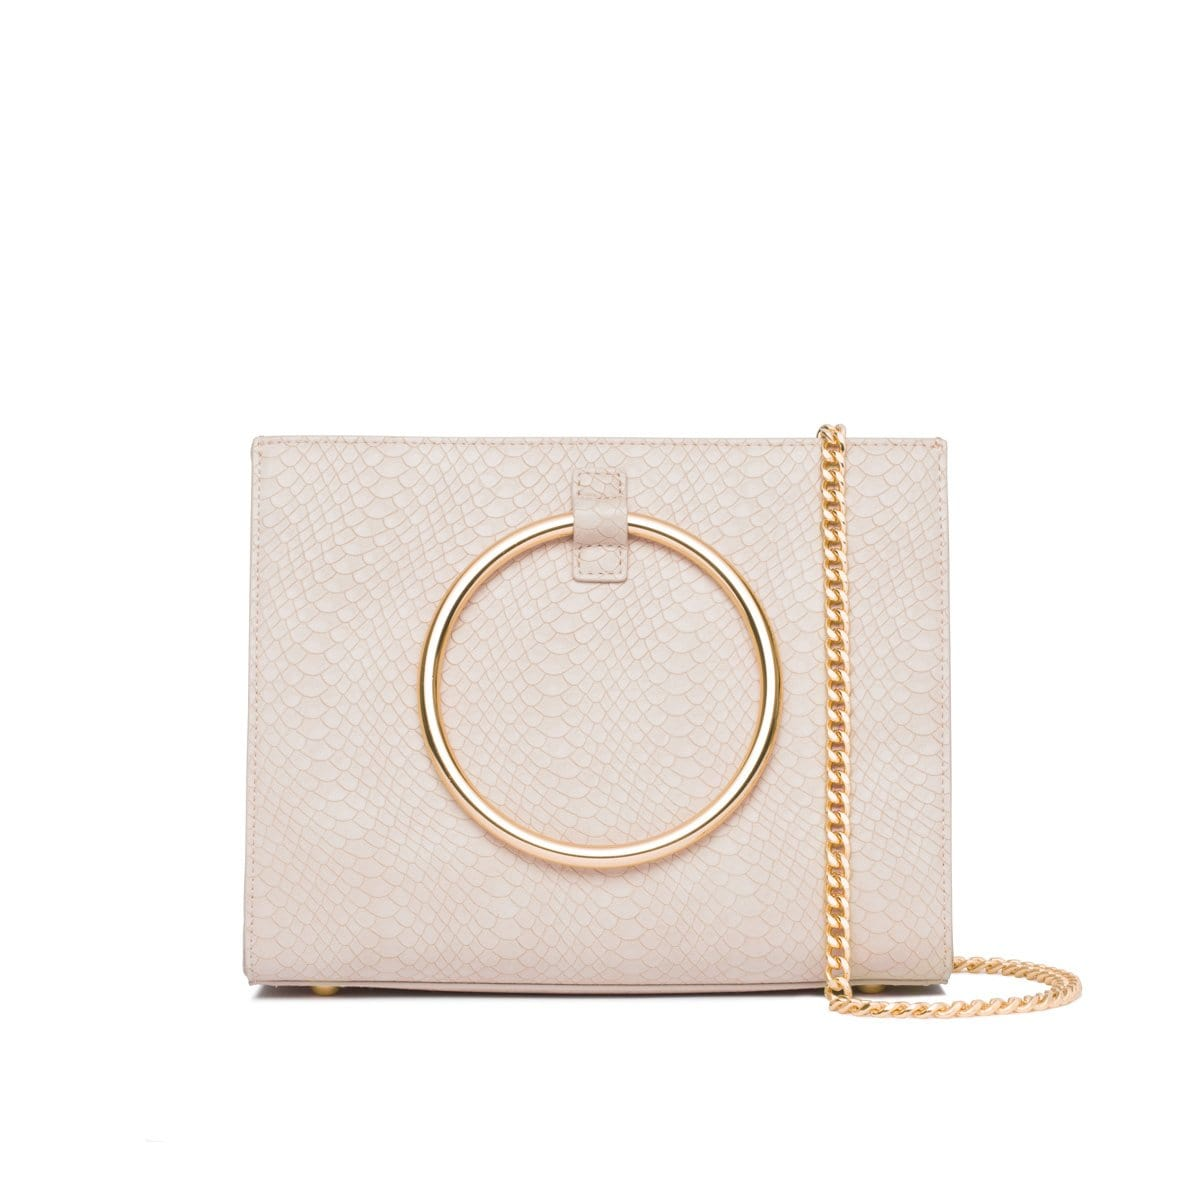 Ivory White Moda Handbag Yellow Gold